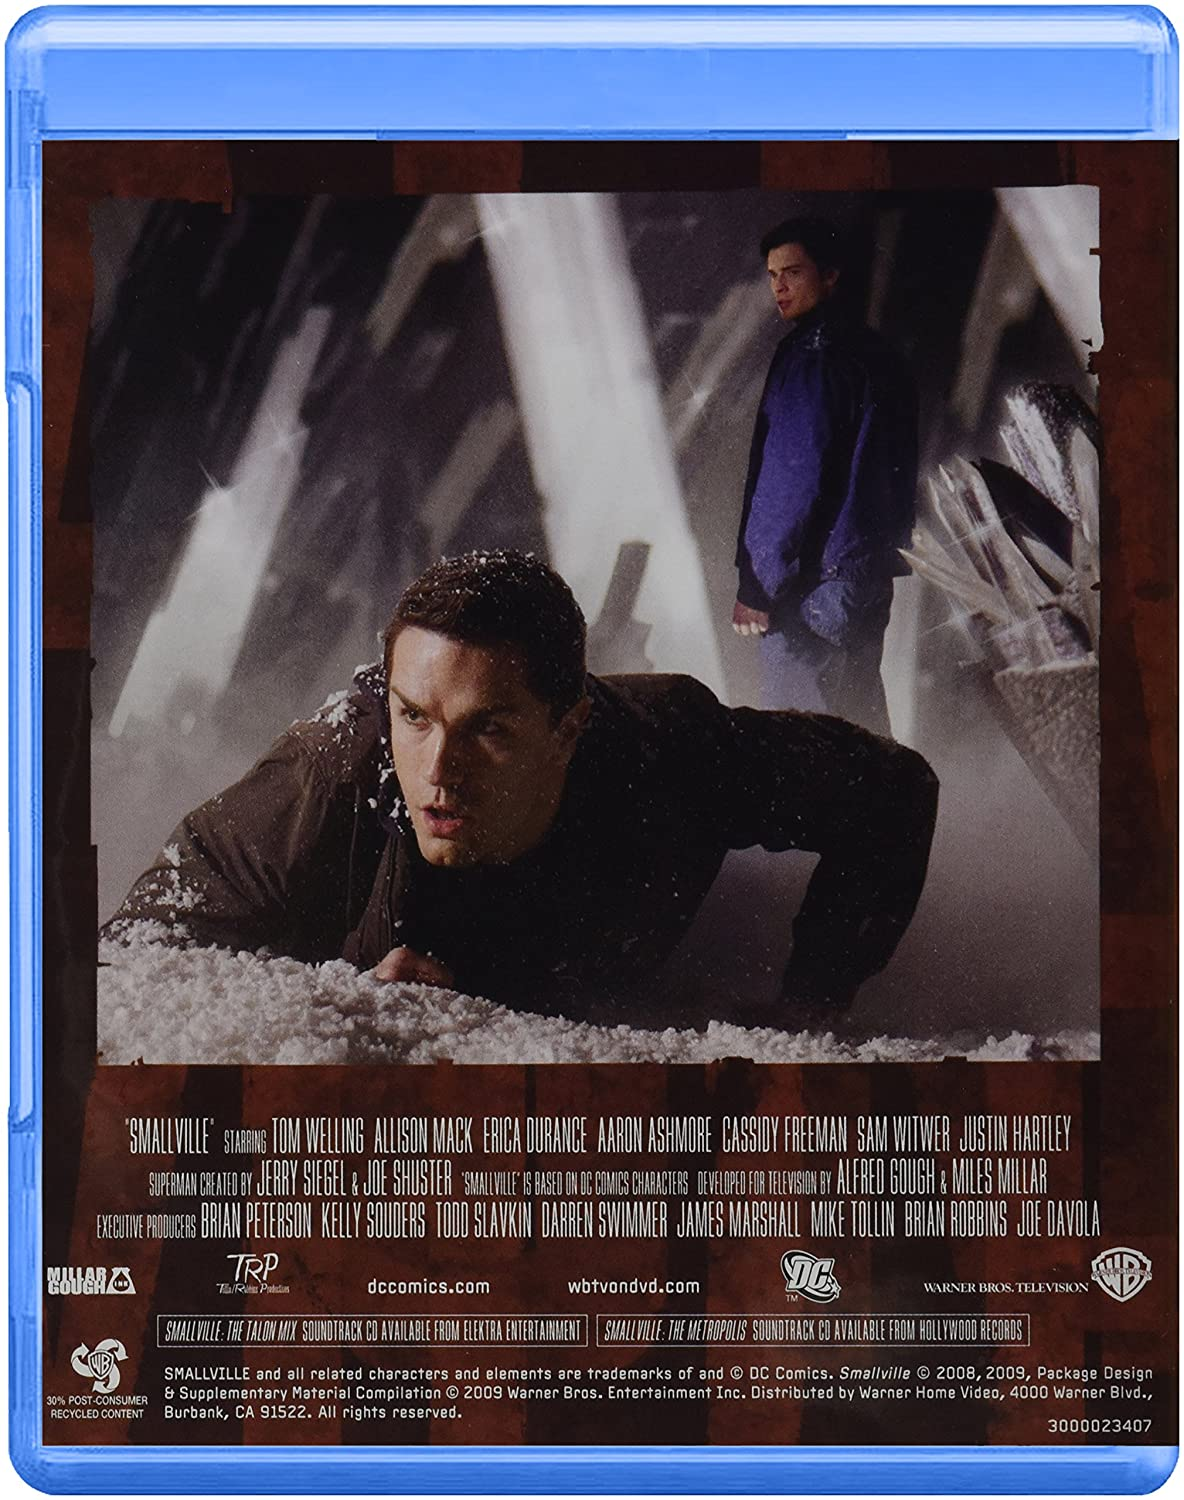 Smallville: Complete Eighth Season Alemania Blu-ray: Amazon.es: Tom Welling, Alfred Gough and Mile E, Alfred Gough, Miles Millar: Cine y Series TV